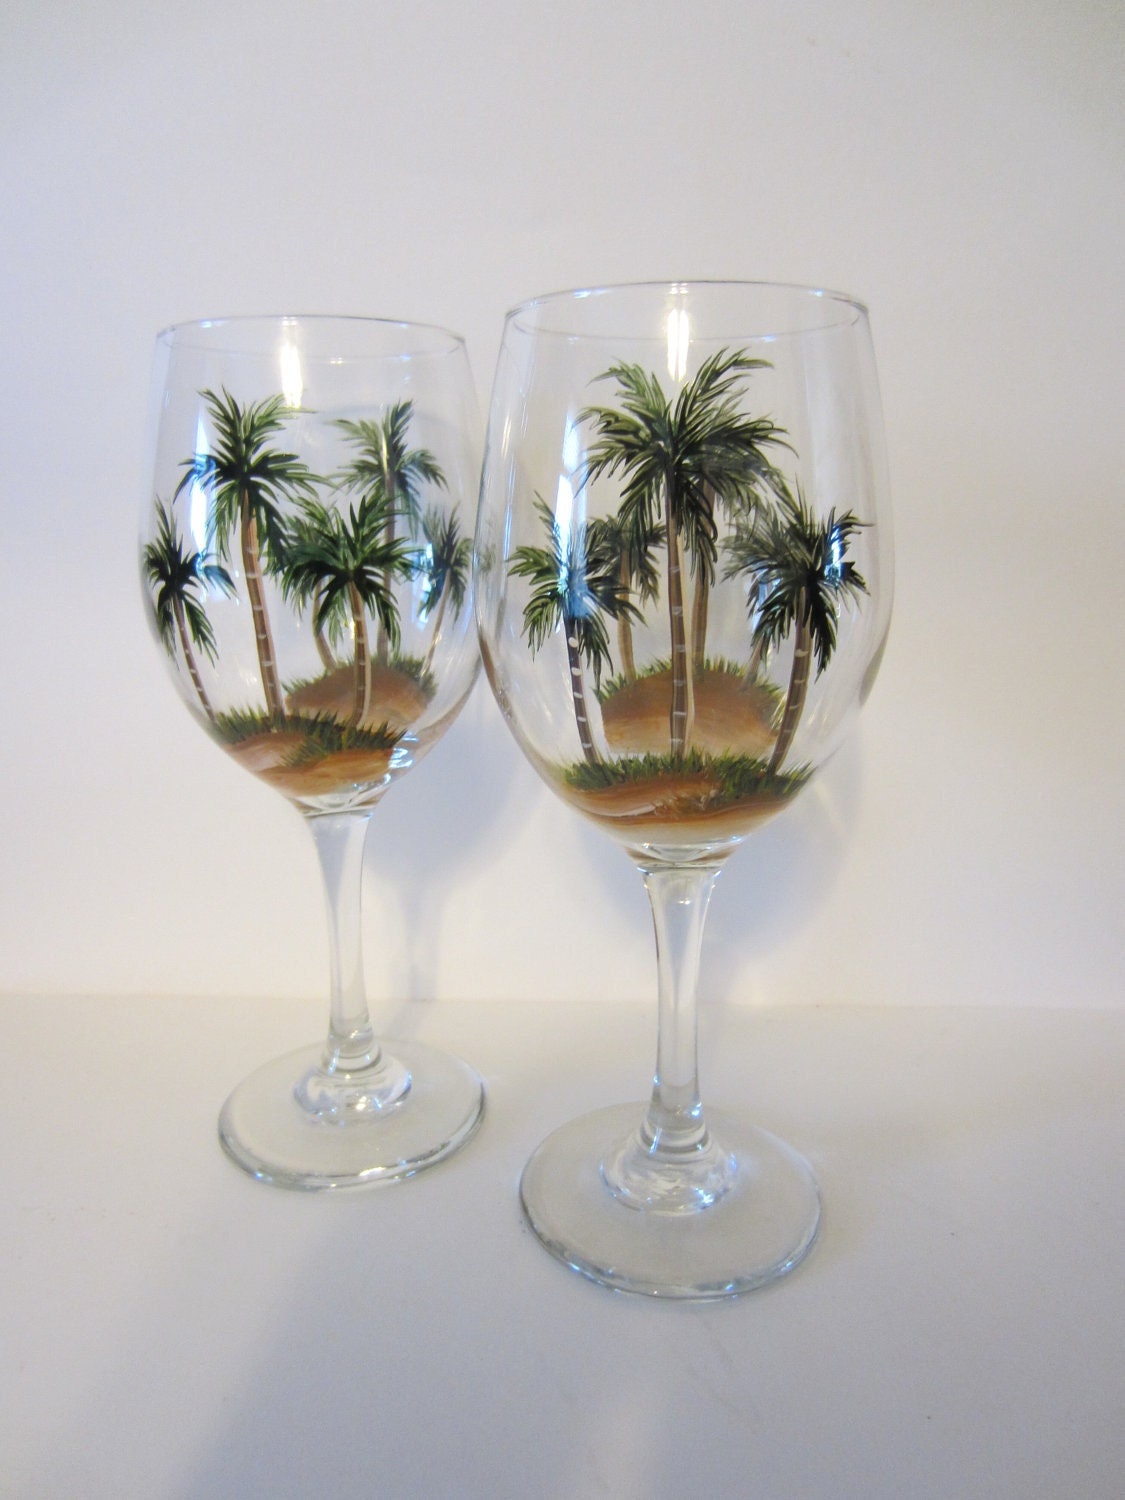 2 hand painted palm tree wine glasses Images of painted wine glasses